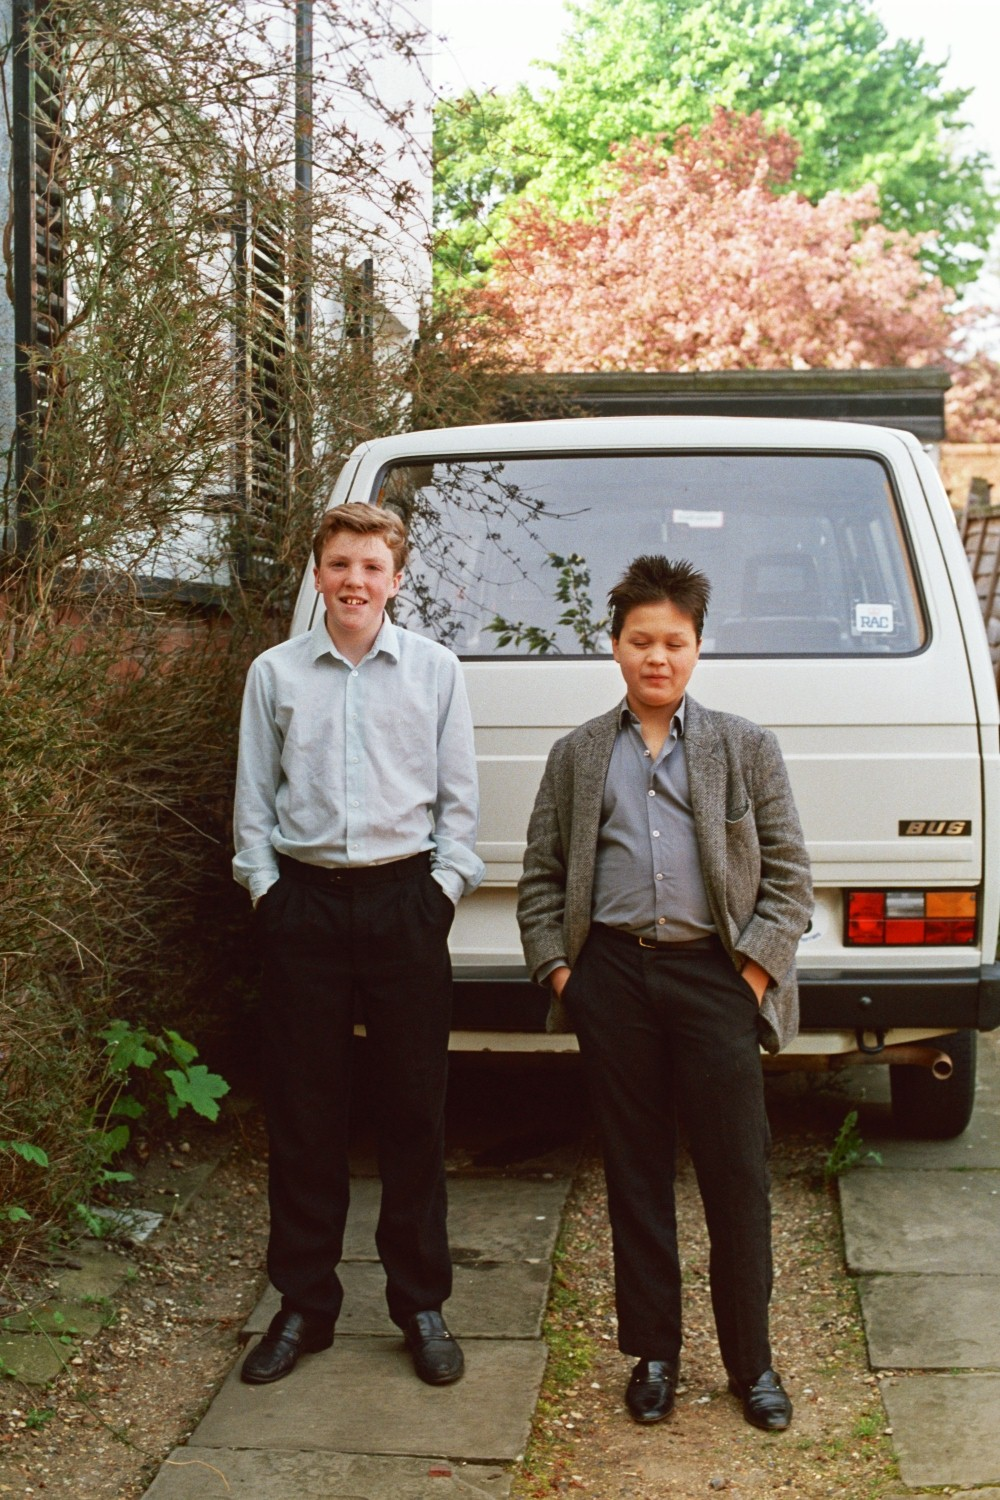 Matt Shearer & Jeremy Ng, Woodford